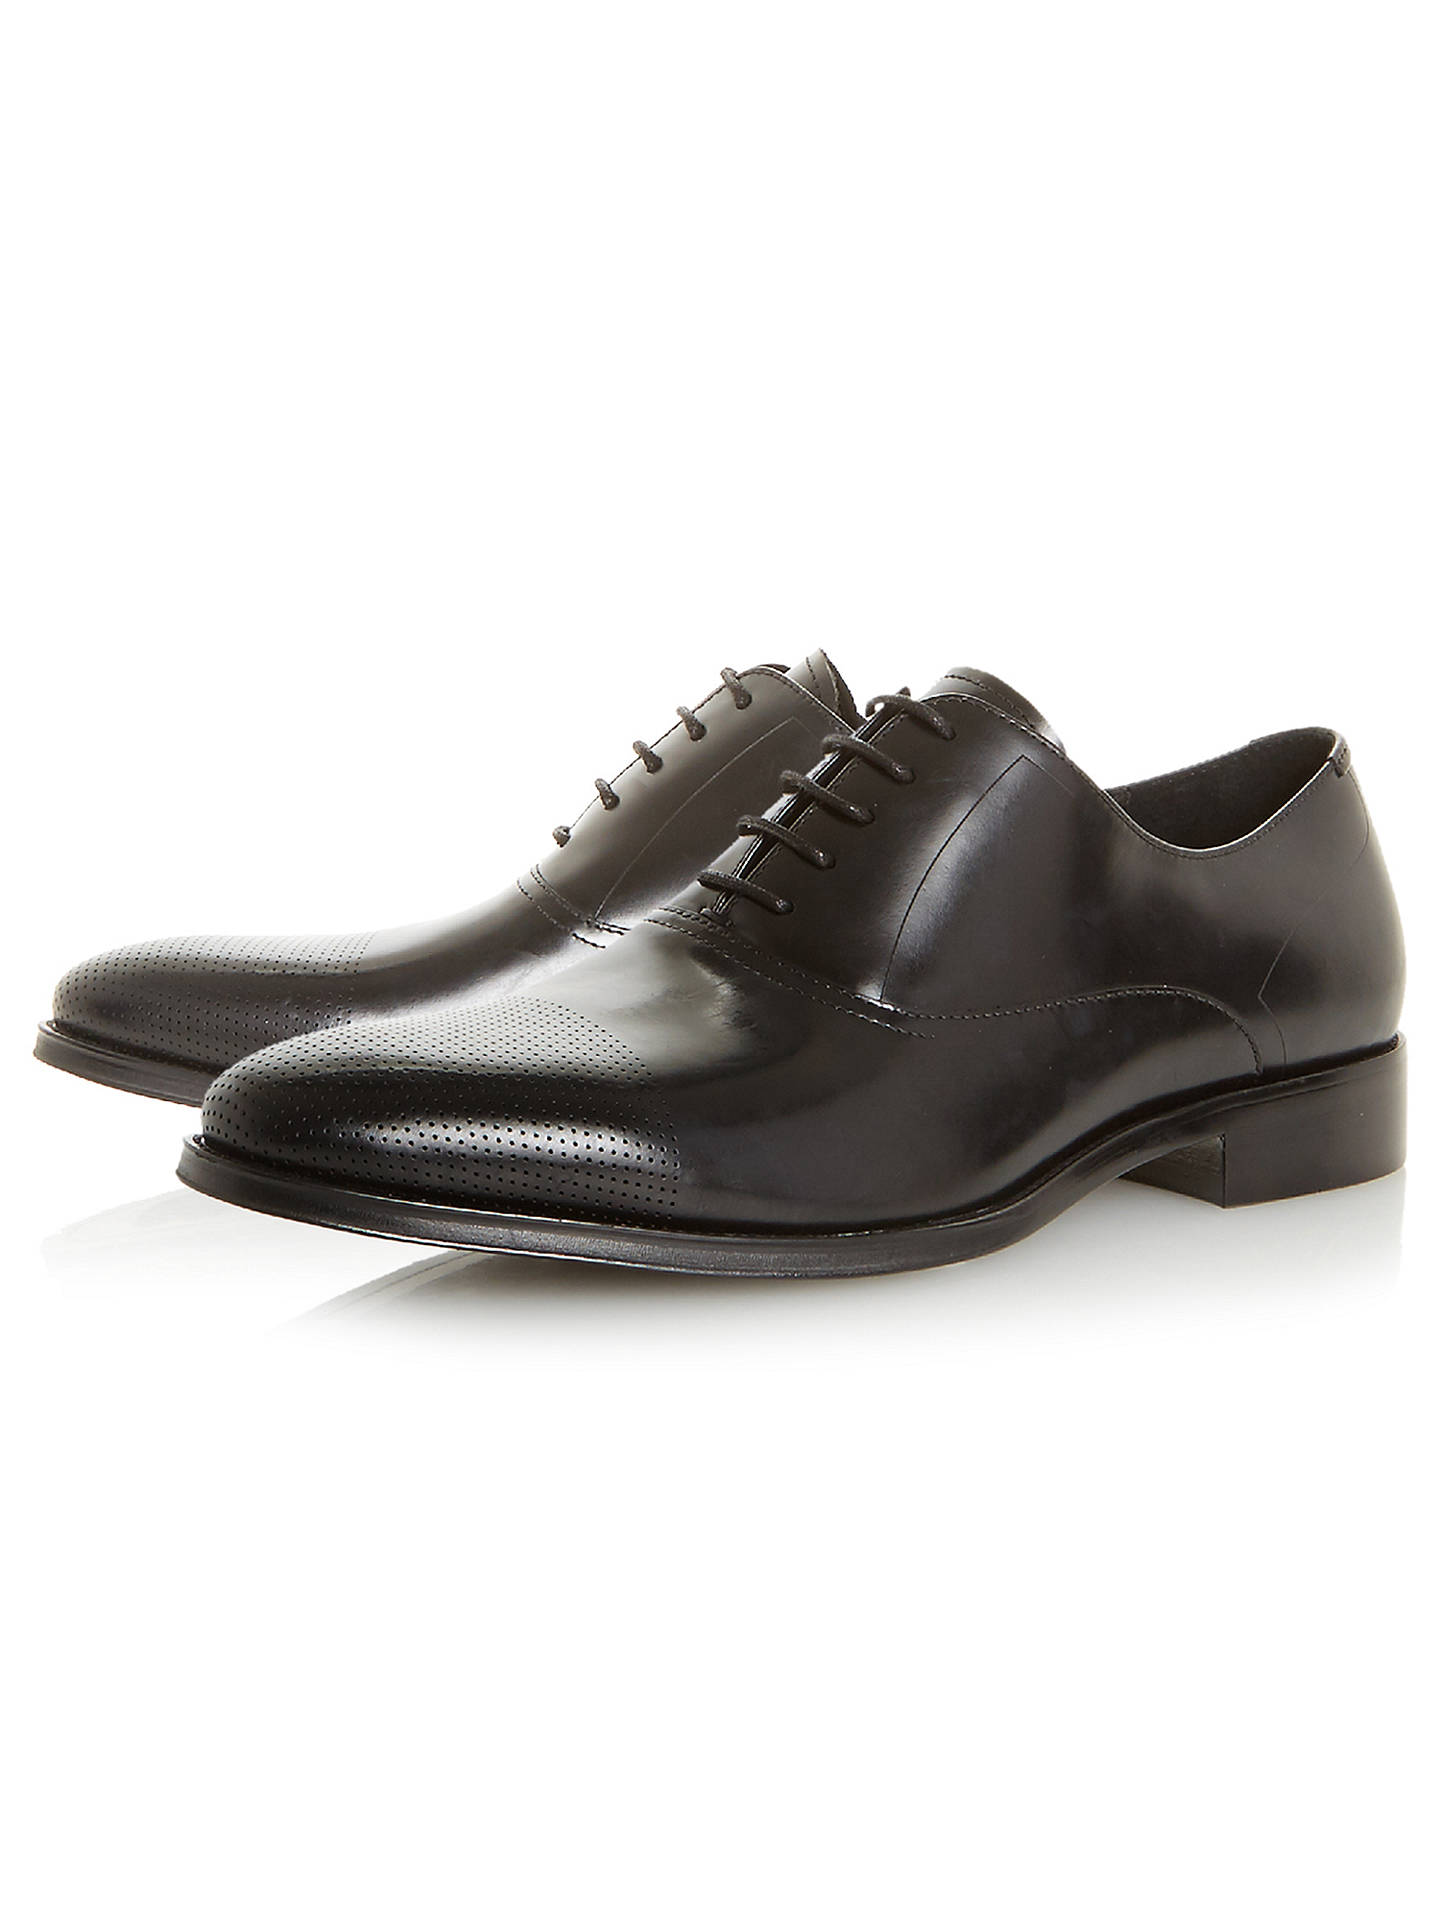 BuyDune Pottery Punch Hole Oxford Shoes, Black, 6 Online at johnlewis.com